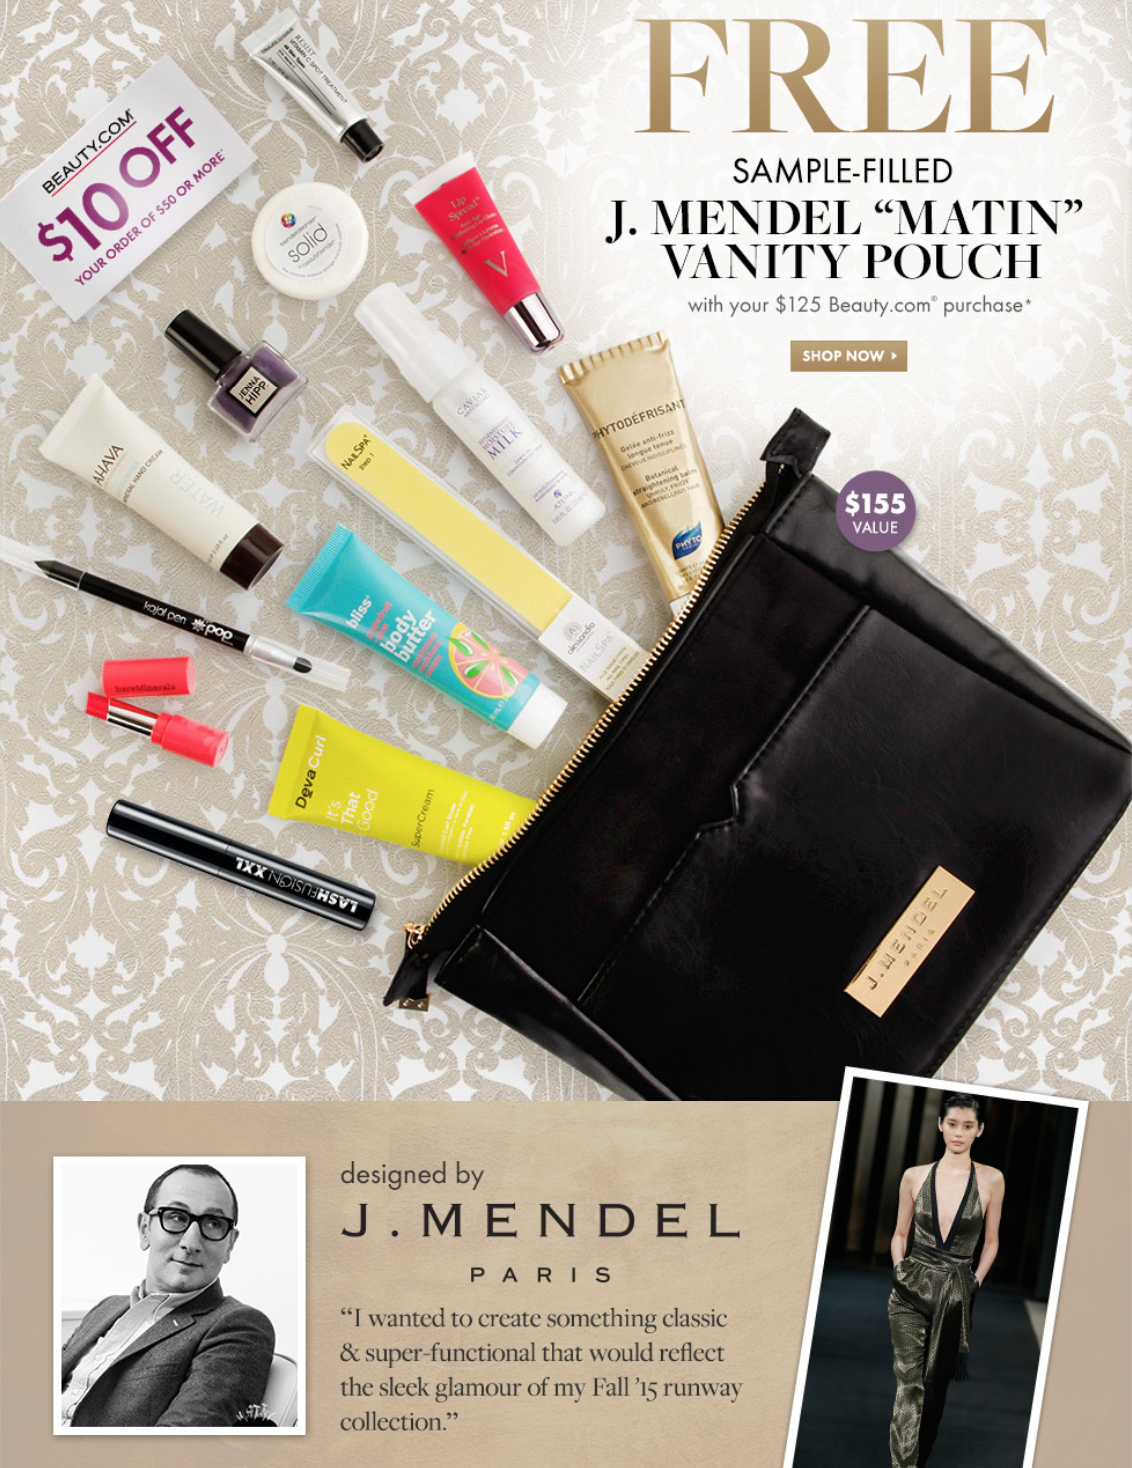 Beauty.com GWP Sample Filled J.Mendel Matin Vanity Pouch!